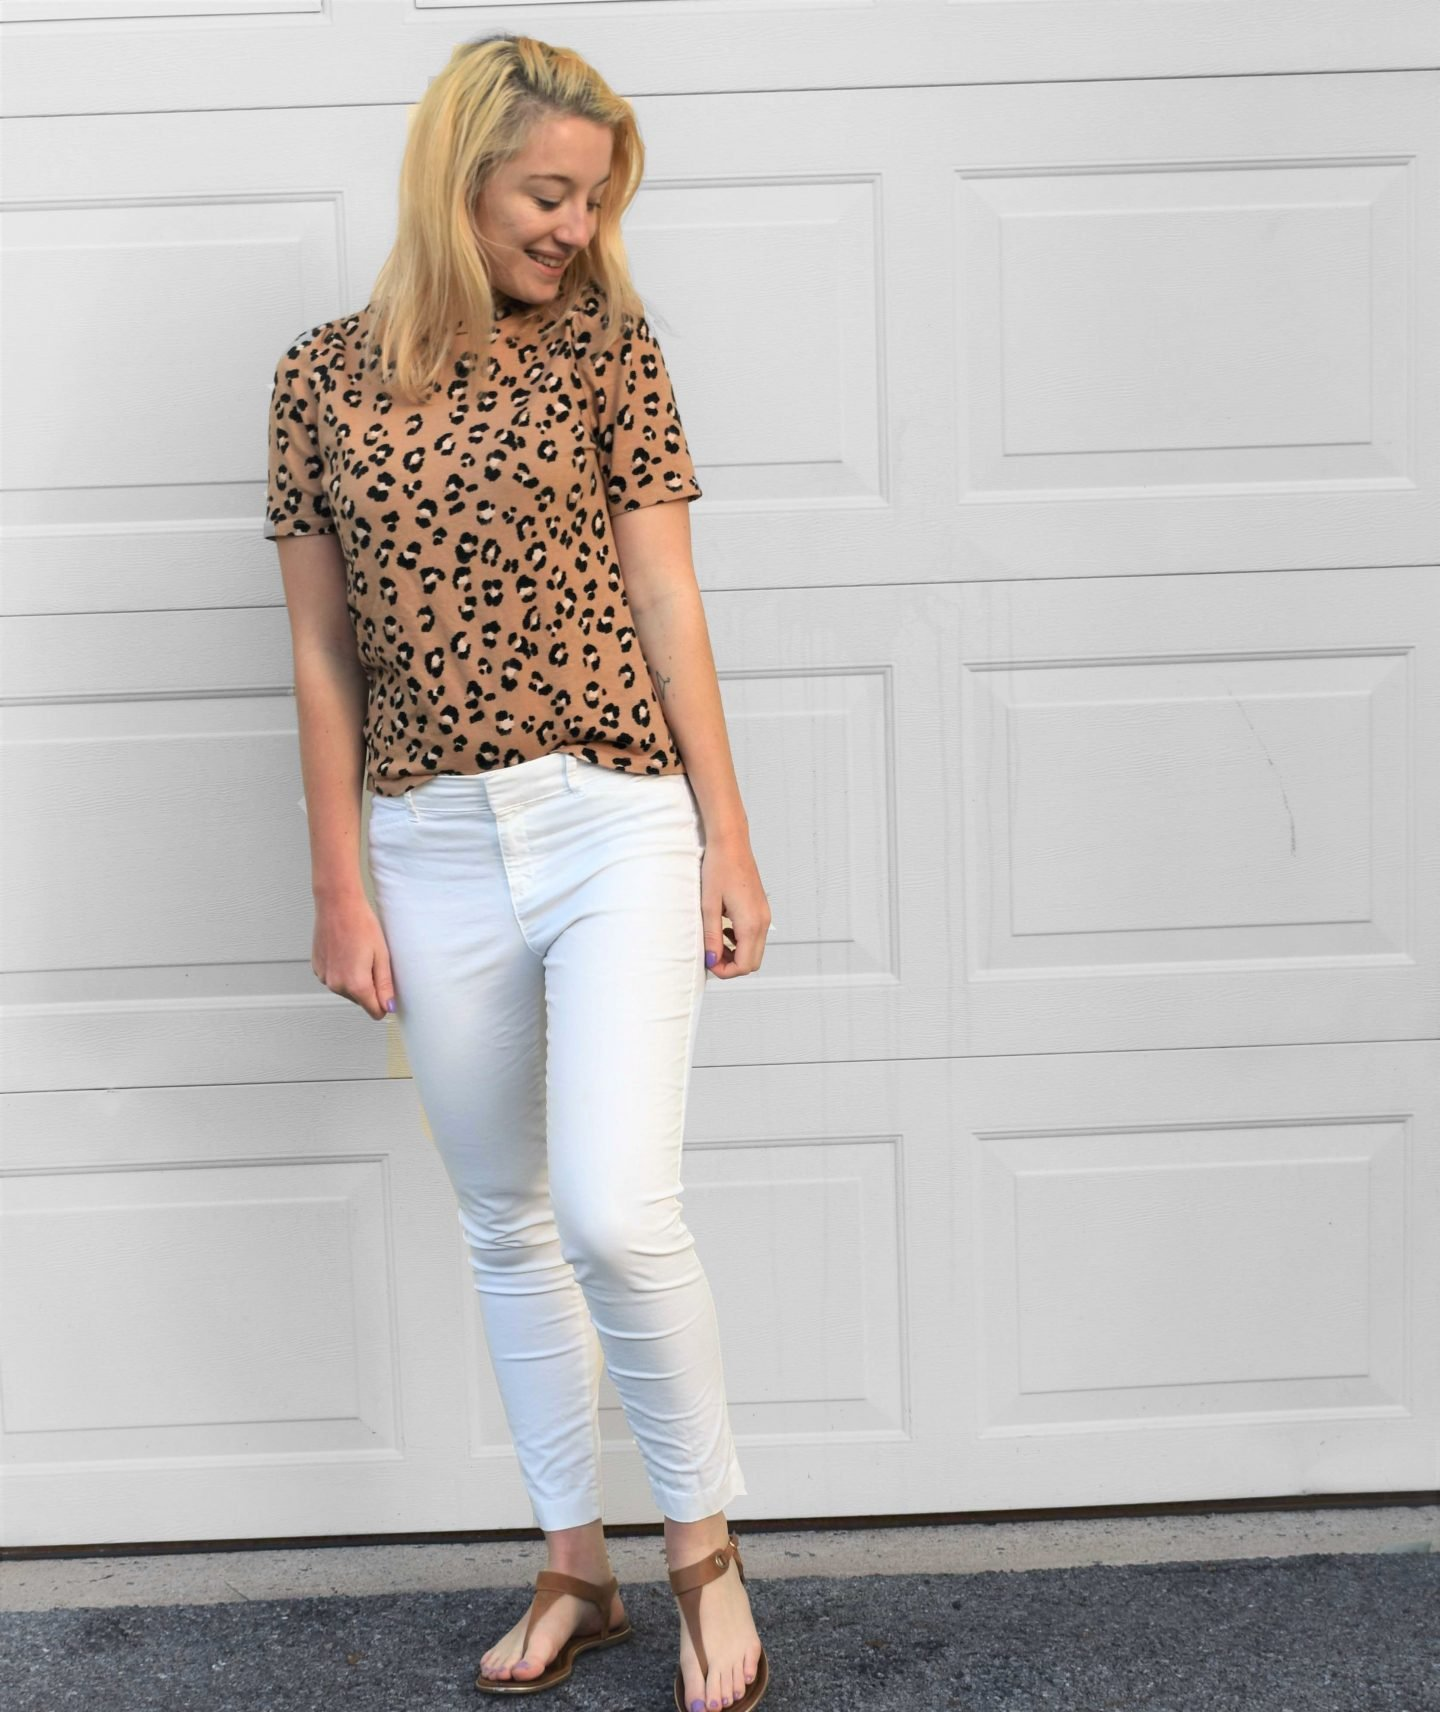 Leopard print tee from Target spring summer outfit